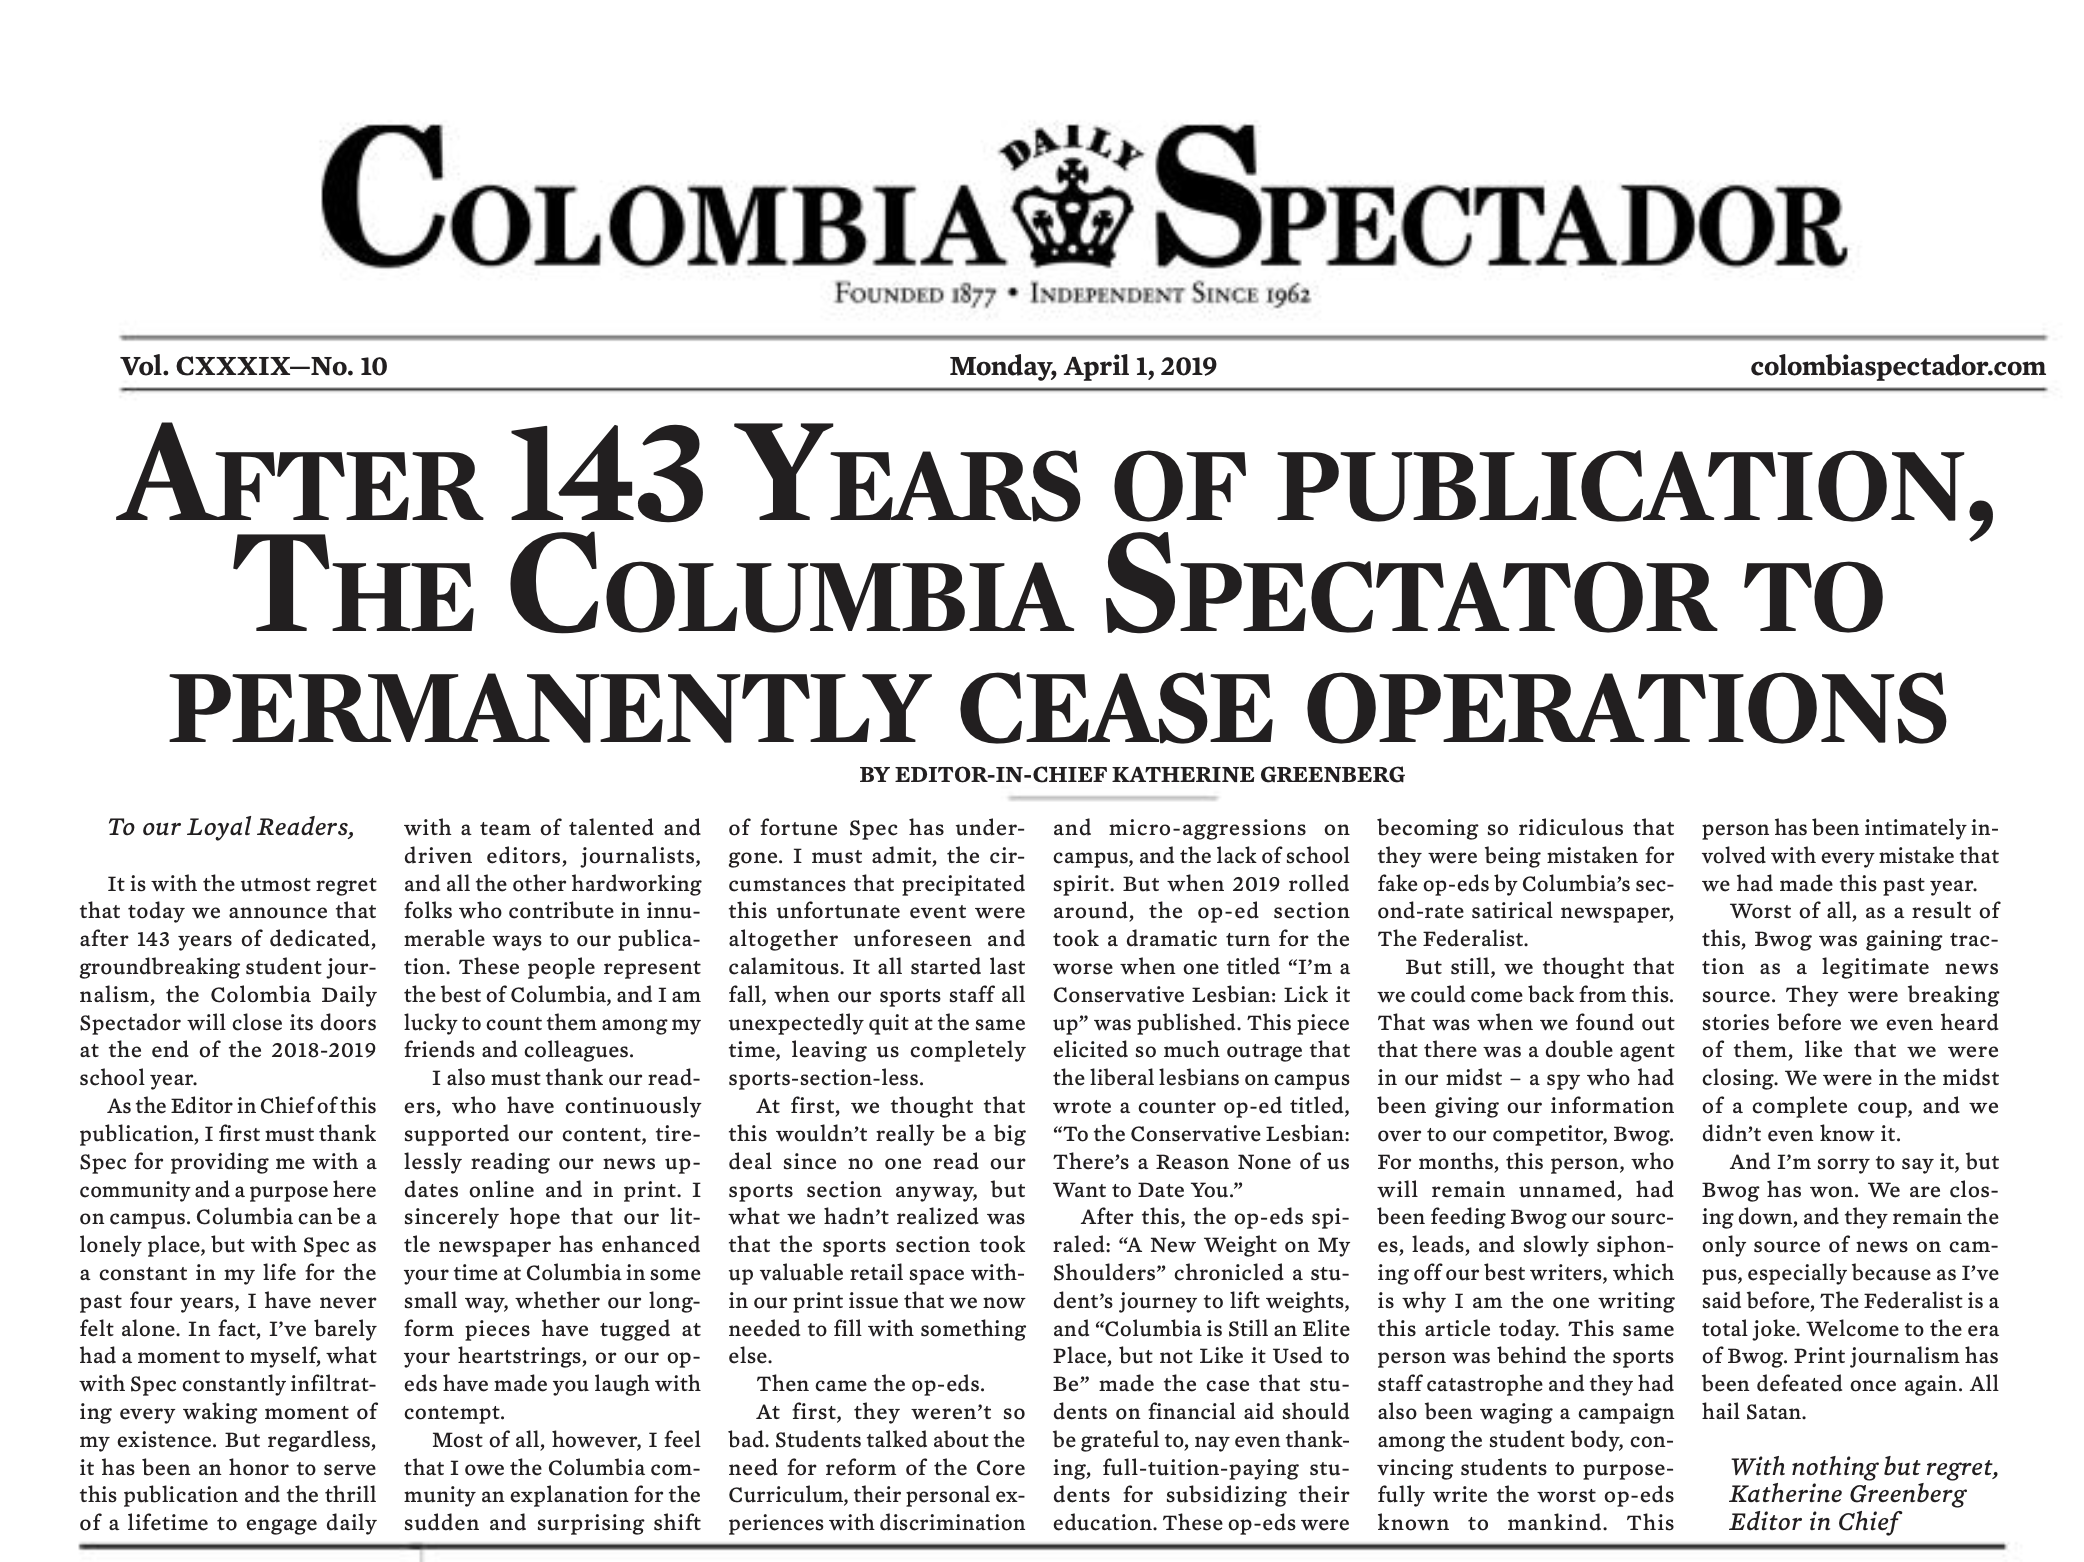 The 2019 Colombia Daily Spectador